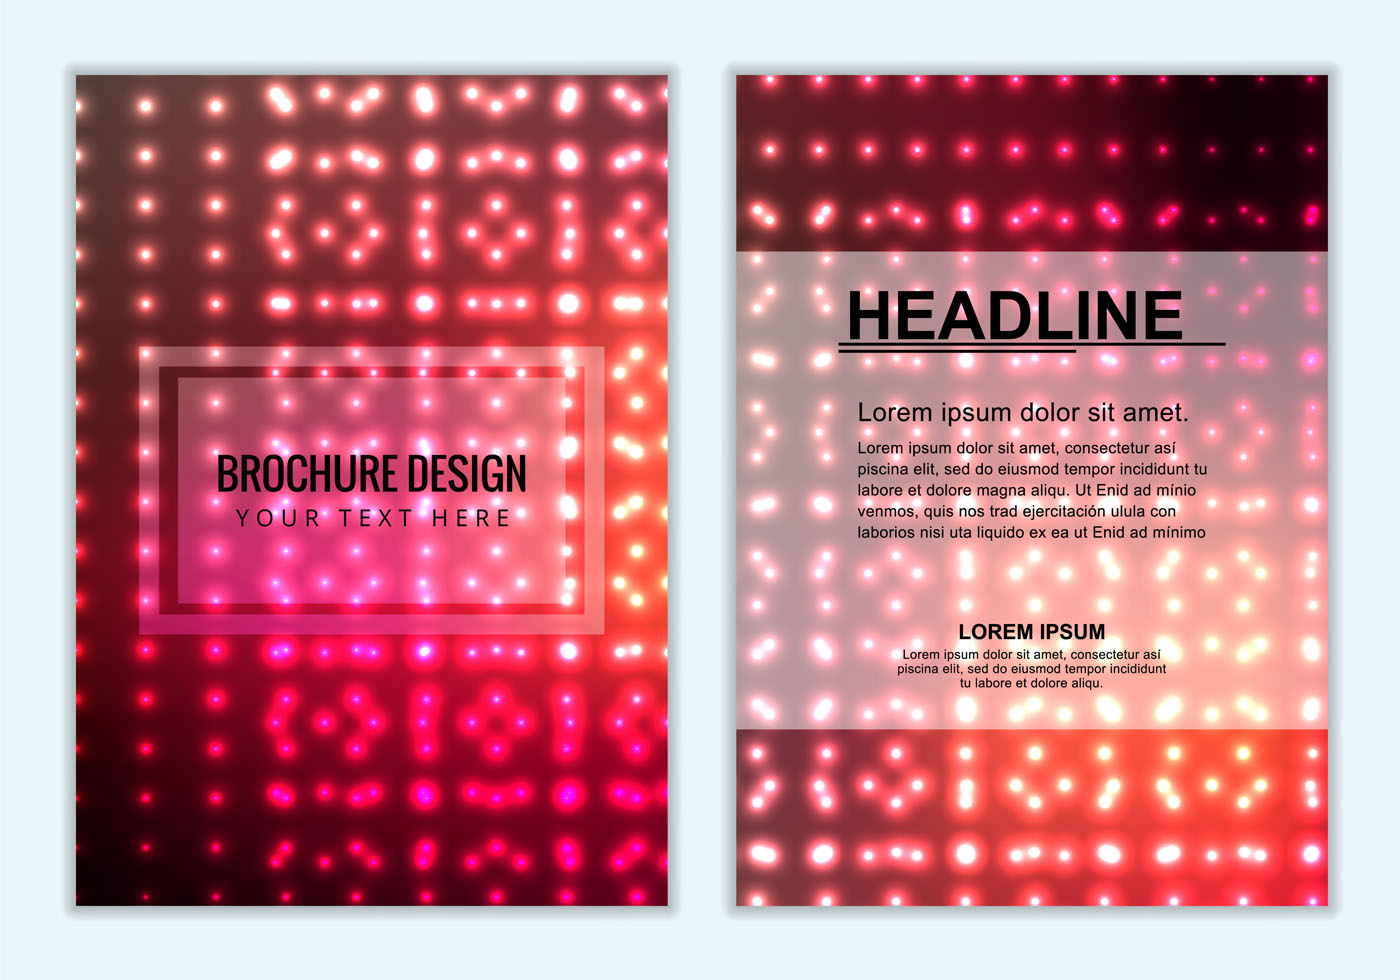 Free Vector Colorful Brochure Background Download Free Vector Art Stock Graphics Amp Images